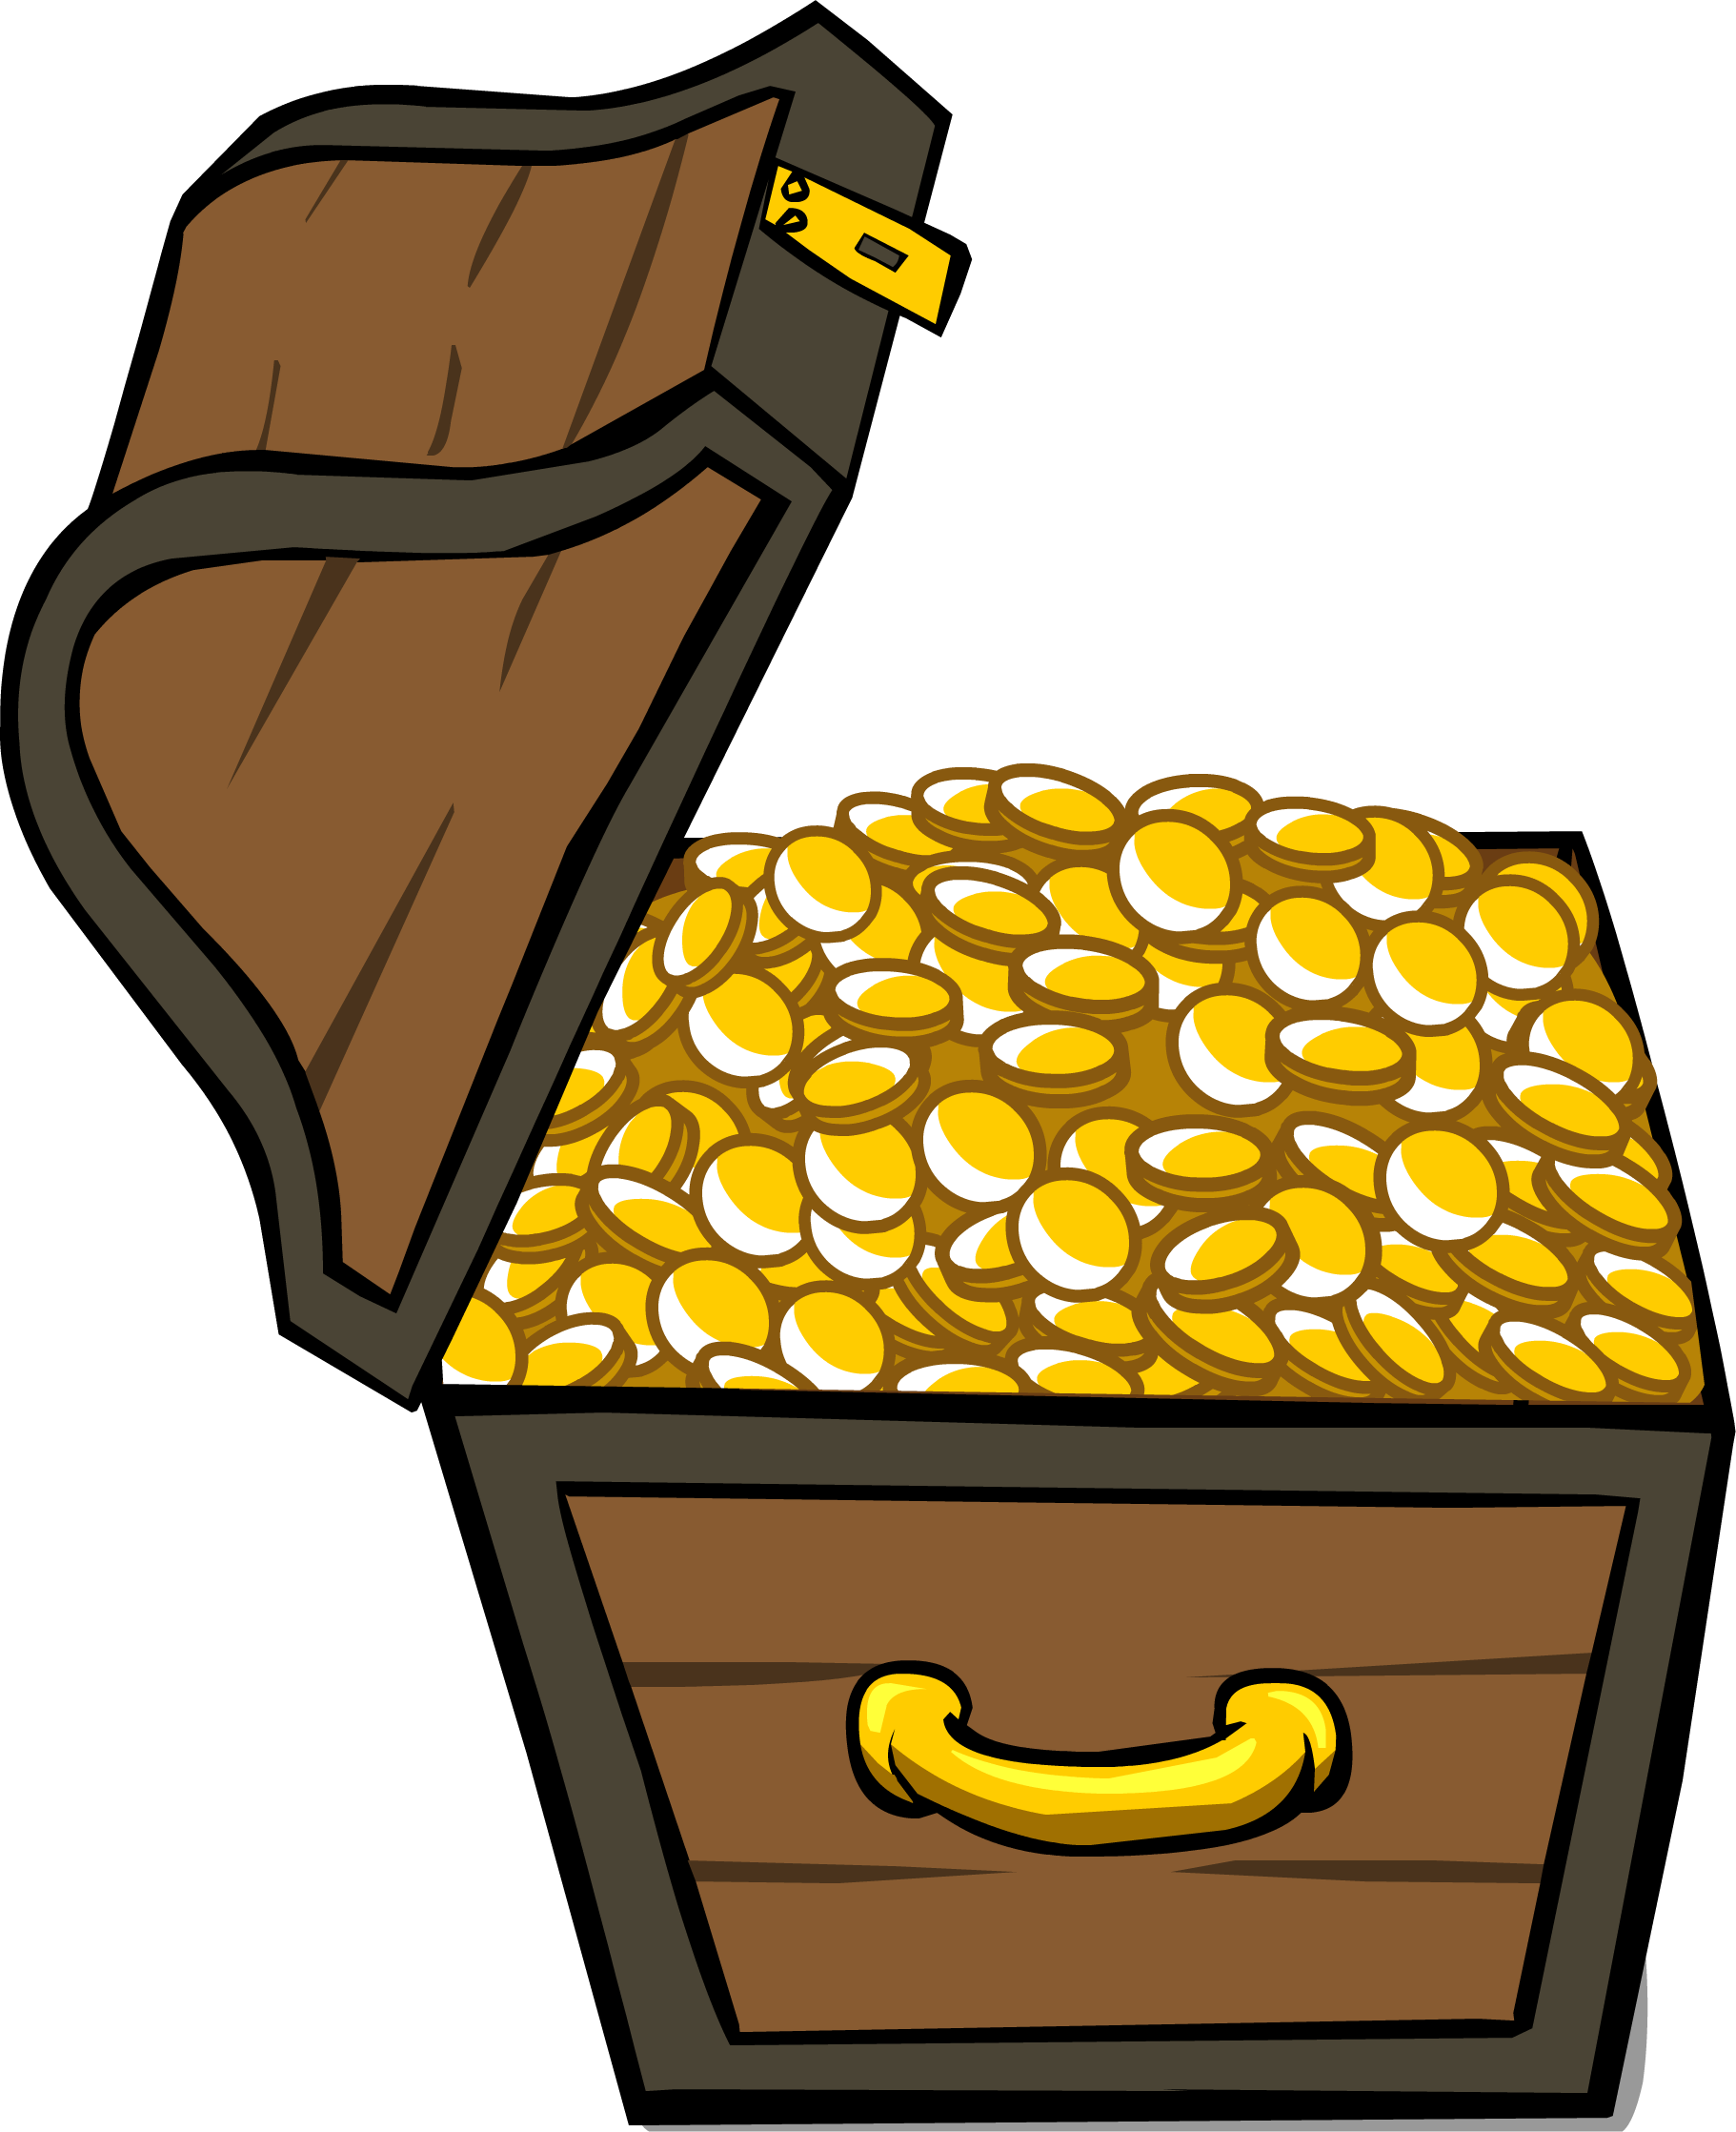 jpg library Chest clipart treasure room. Image id sprite png.